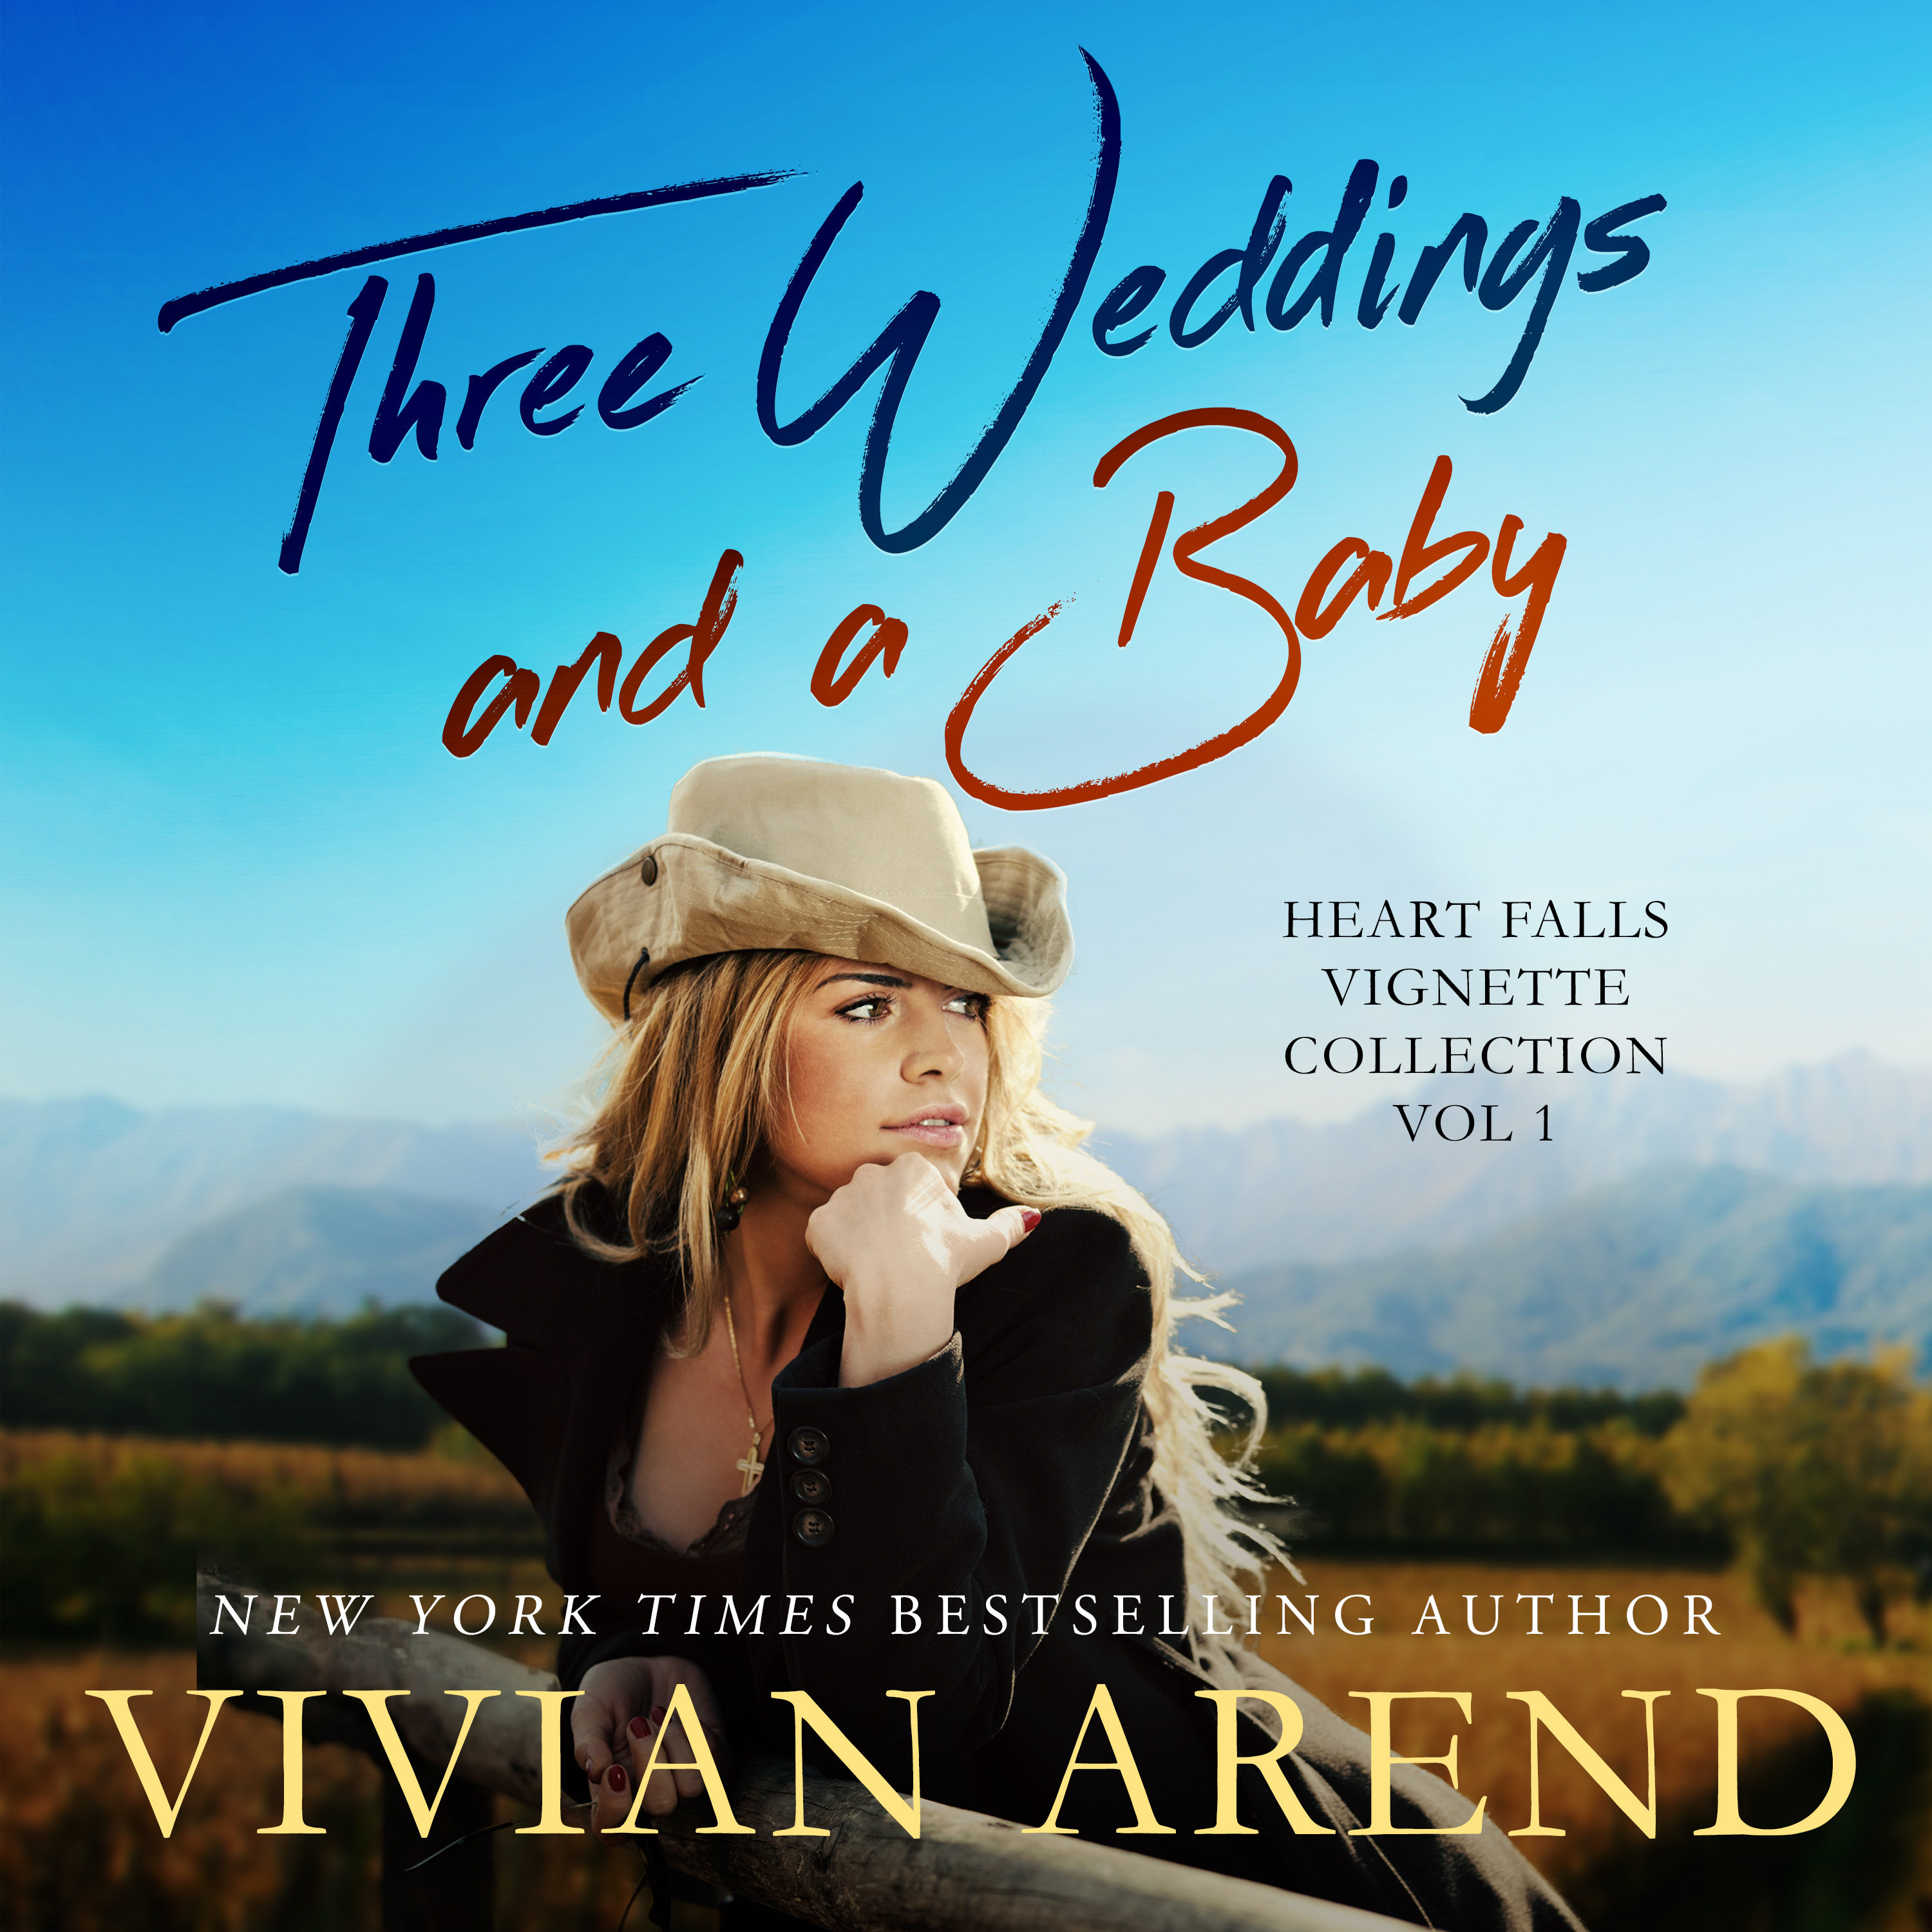 Three Weddings And A Baby audiobook by Vivian Arend